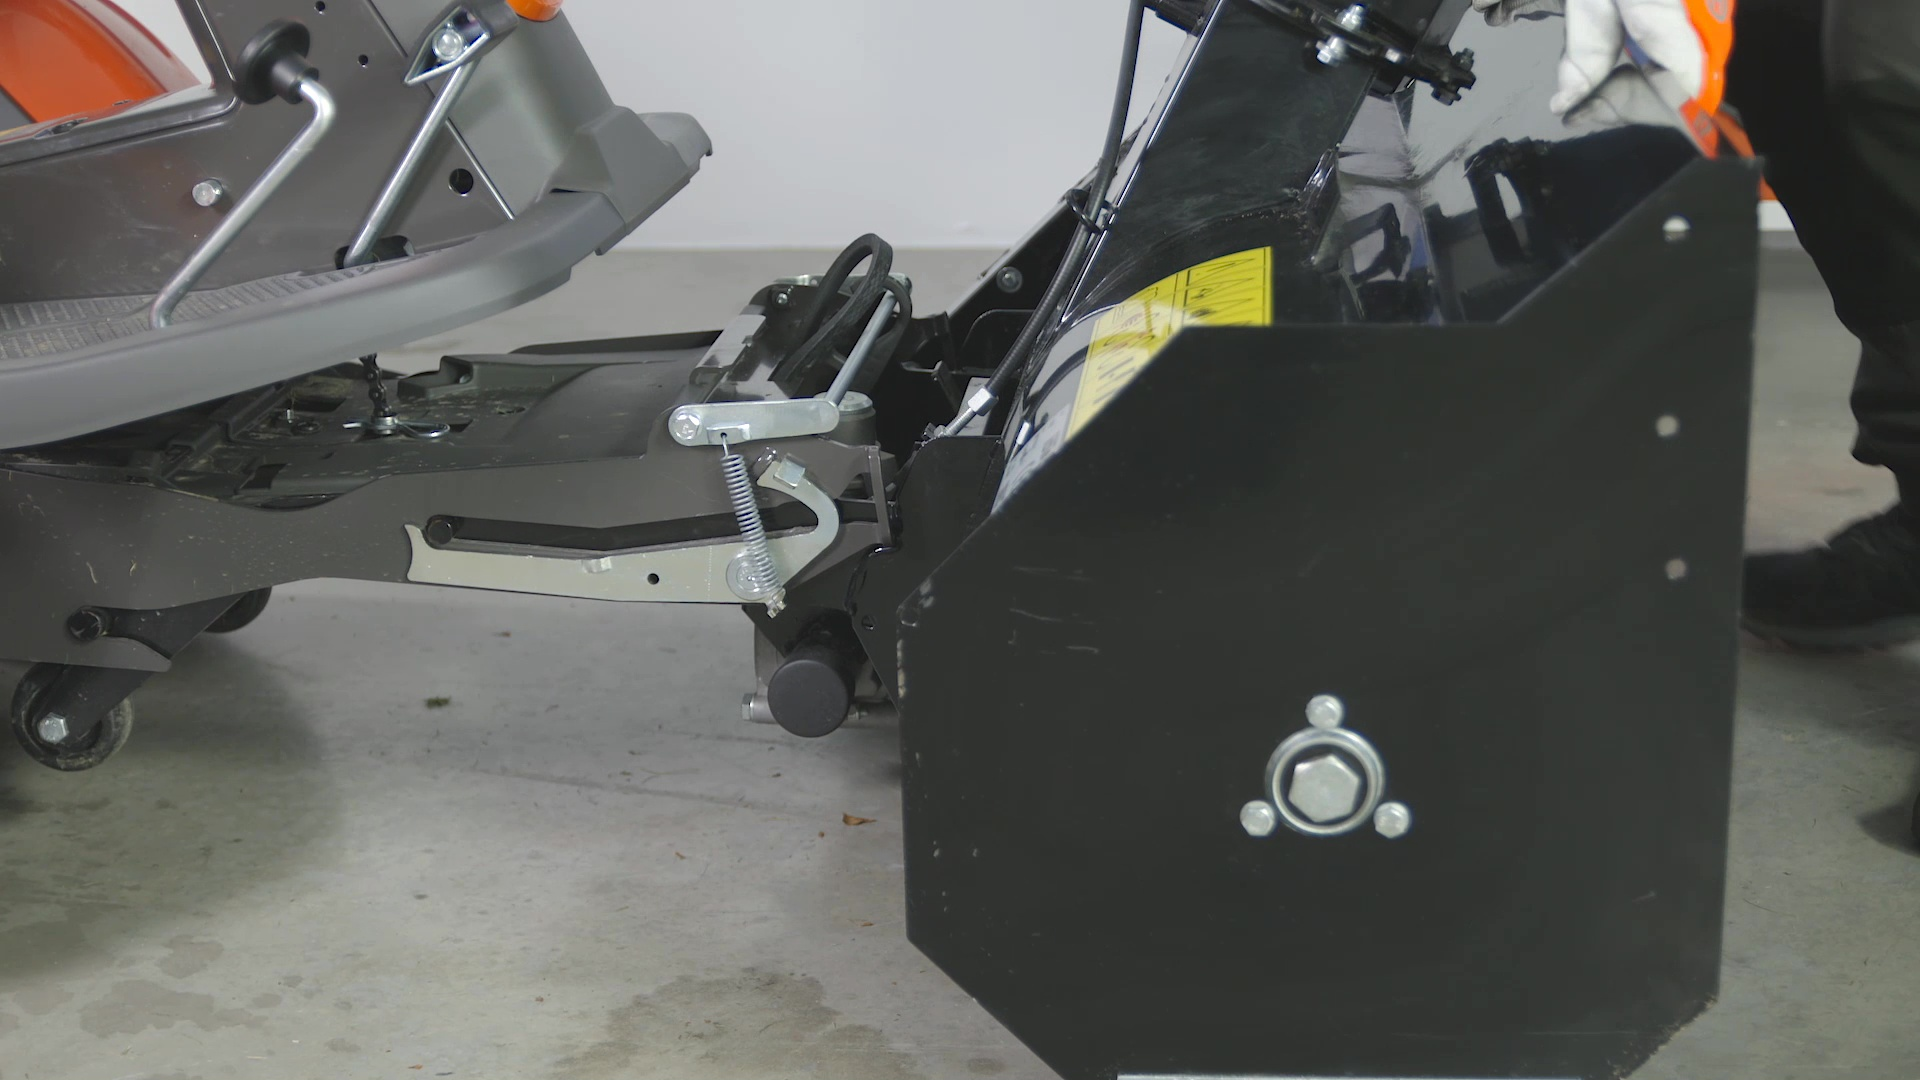 How to attach and remove a snow thrower (R 300-series)